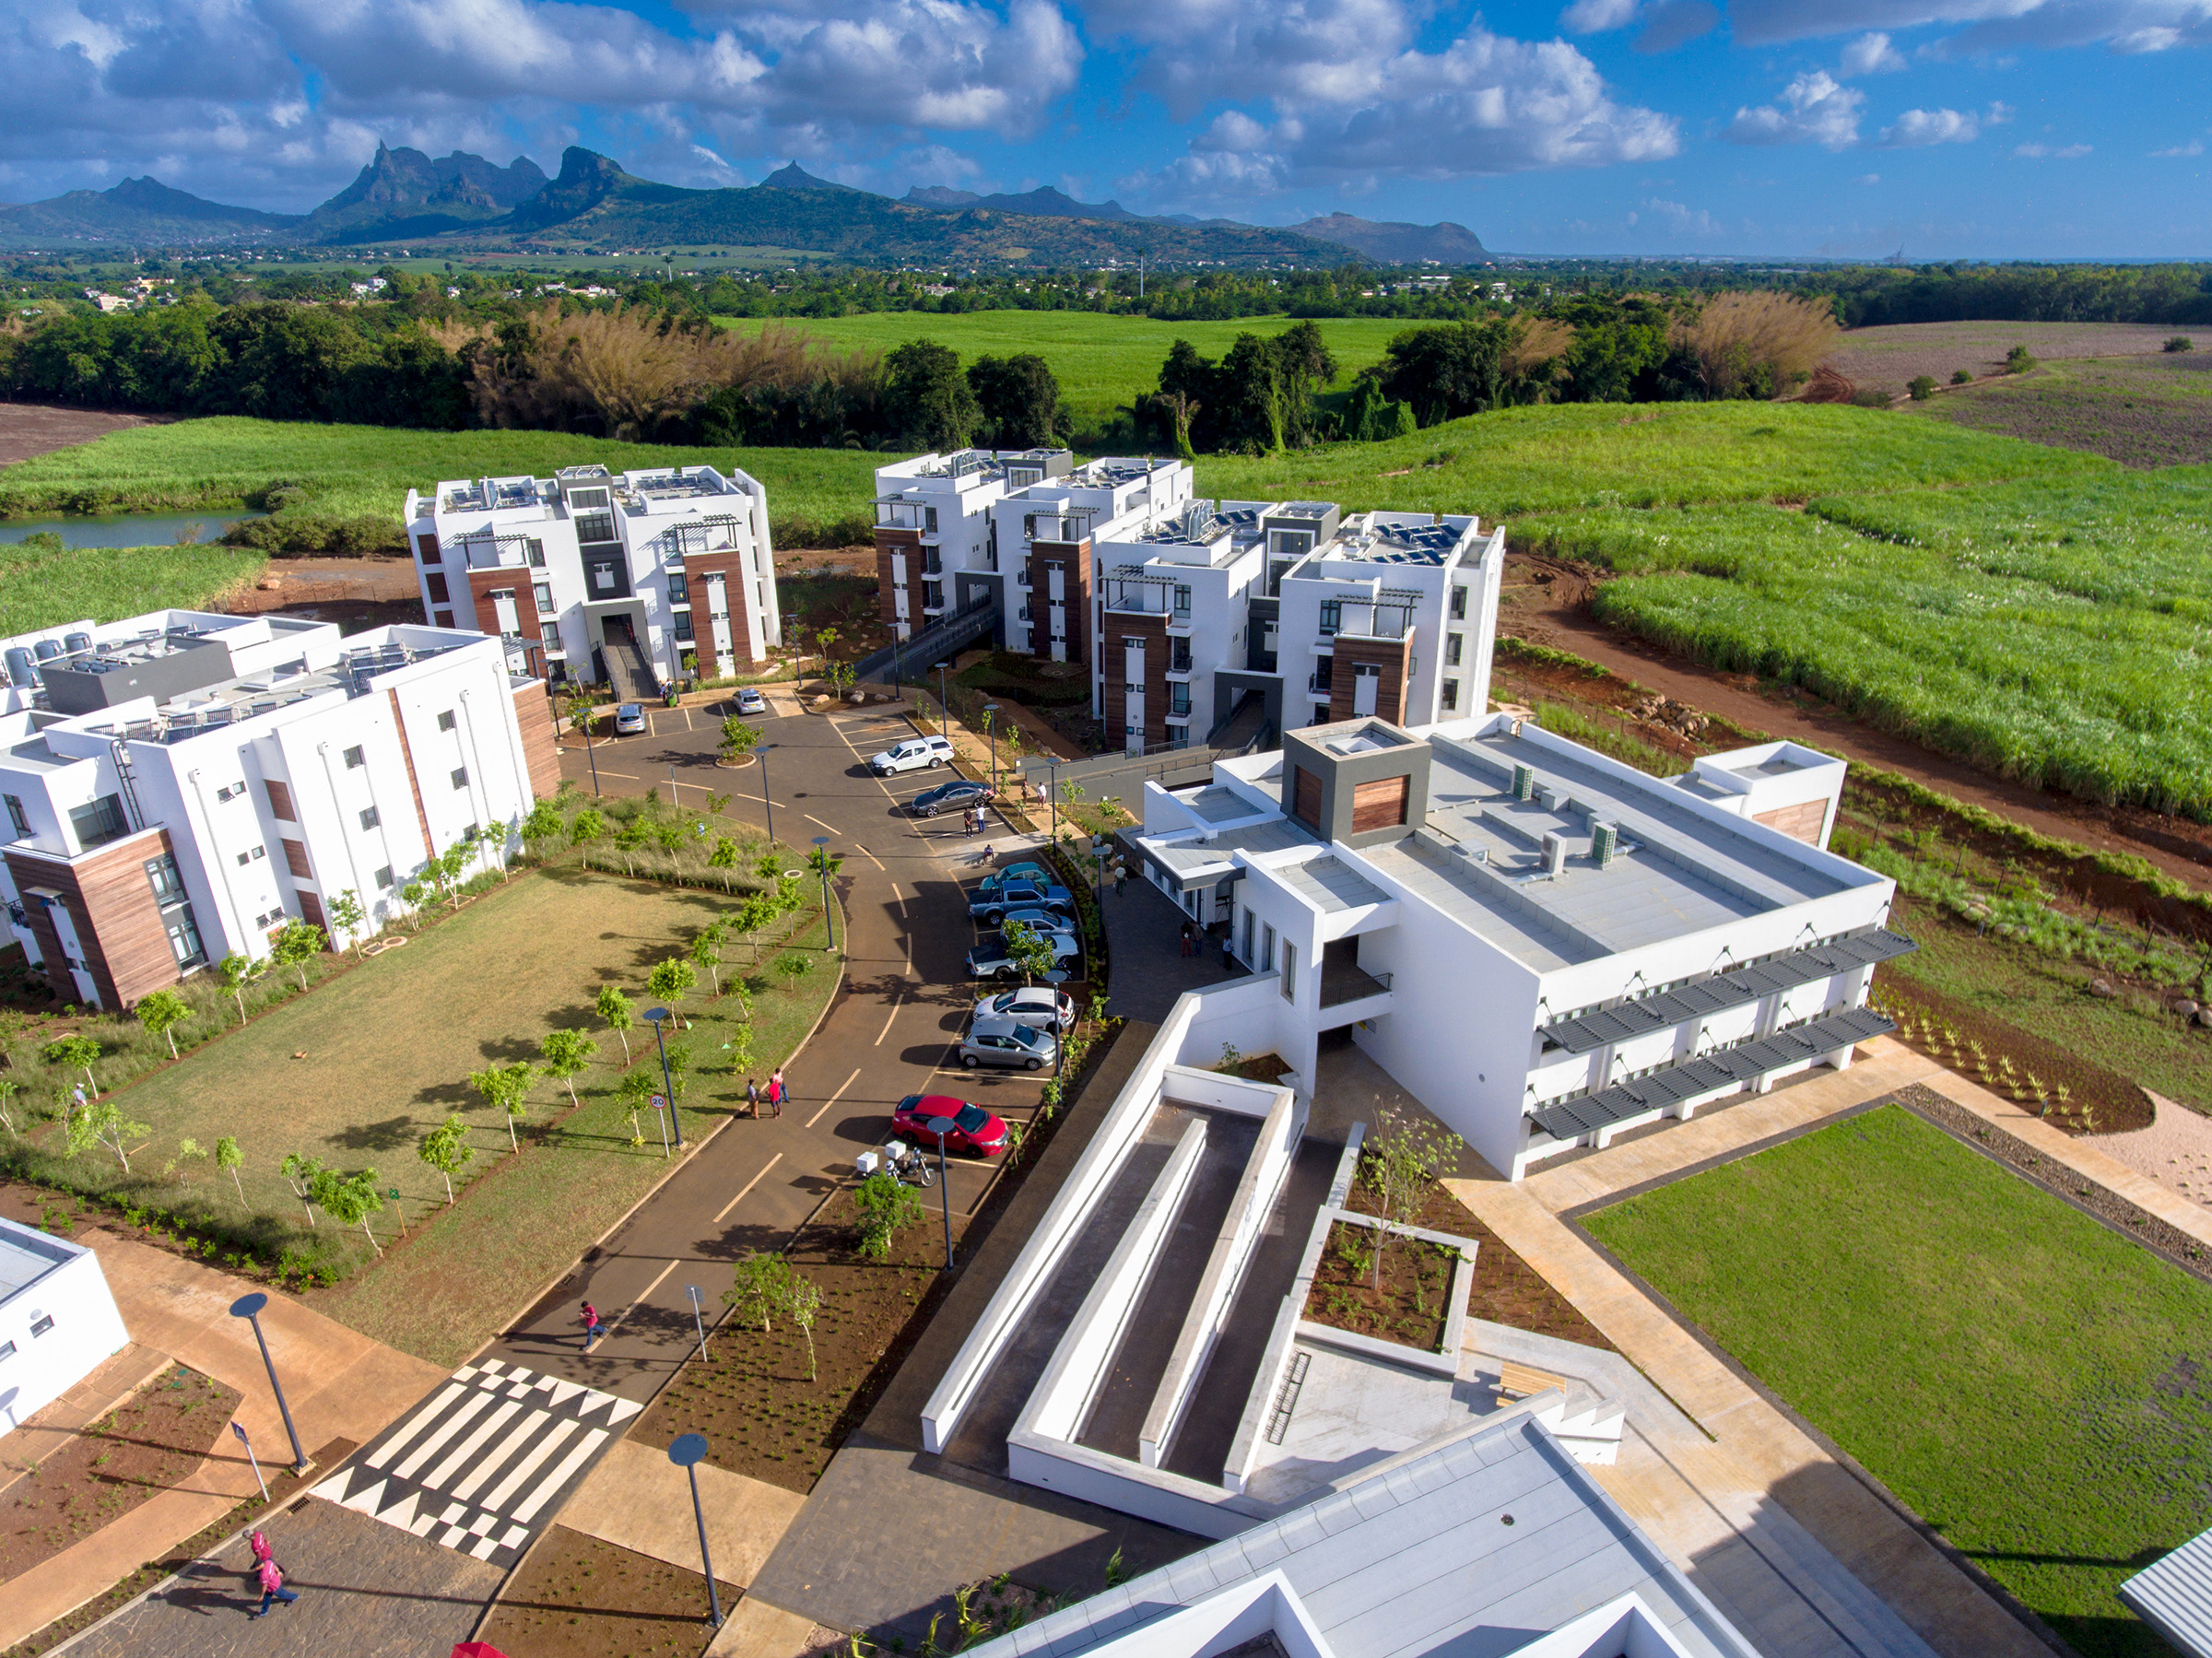 A view of the African Leadership University in Mauritius.